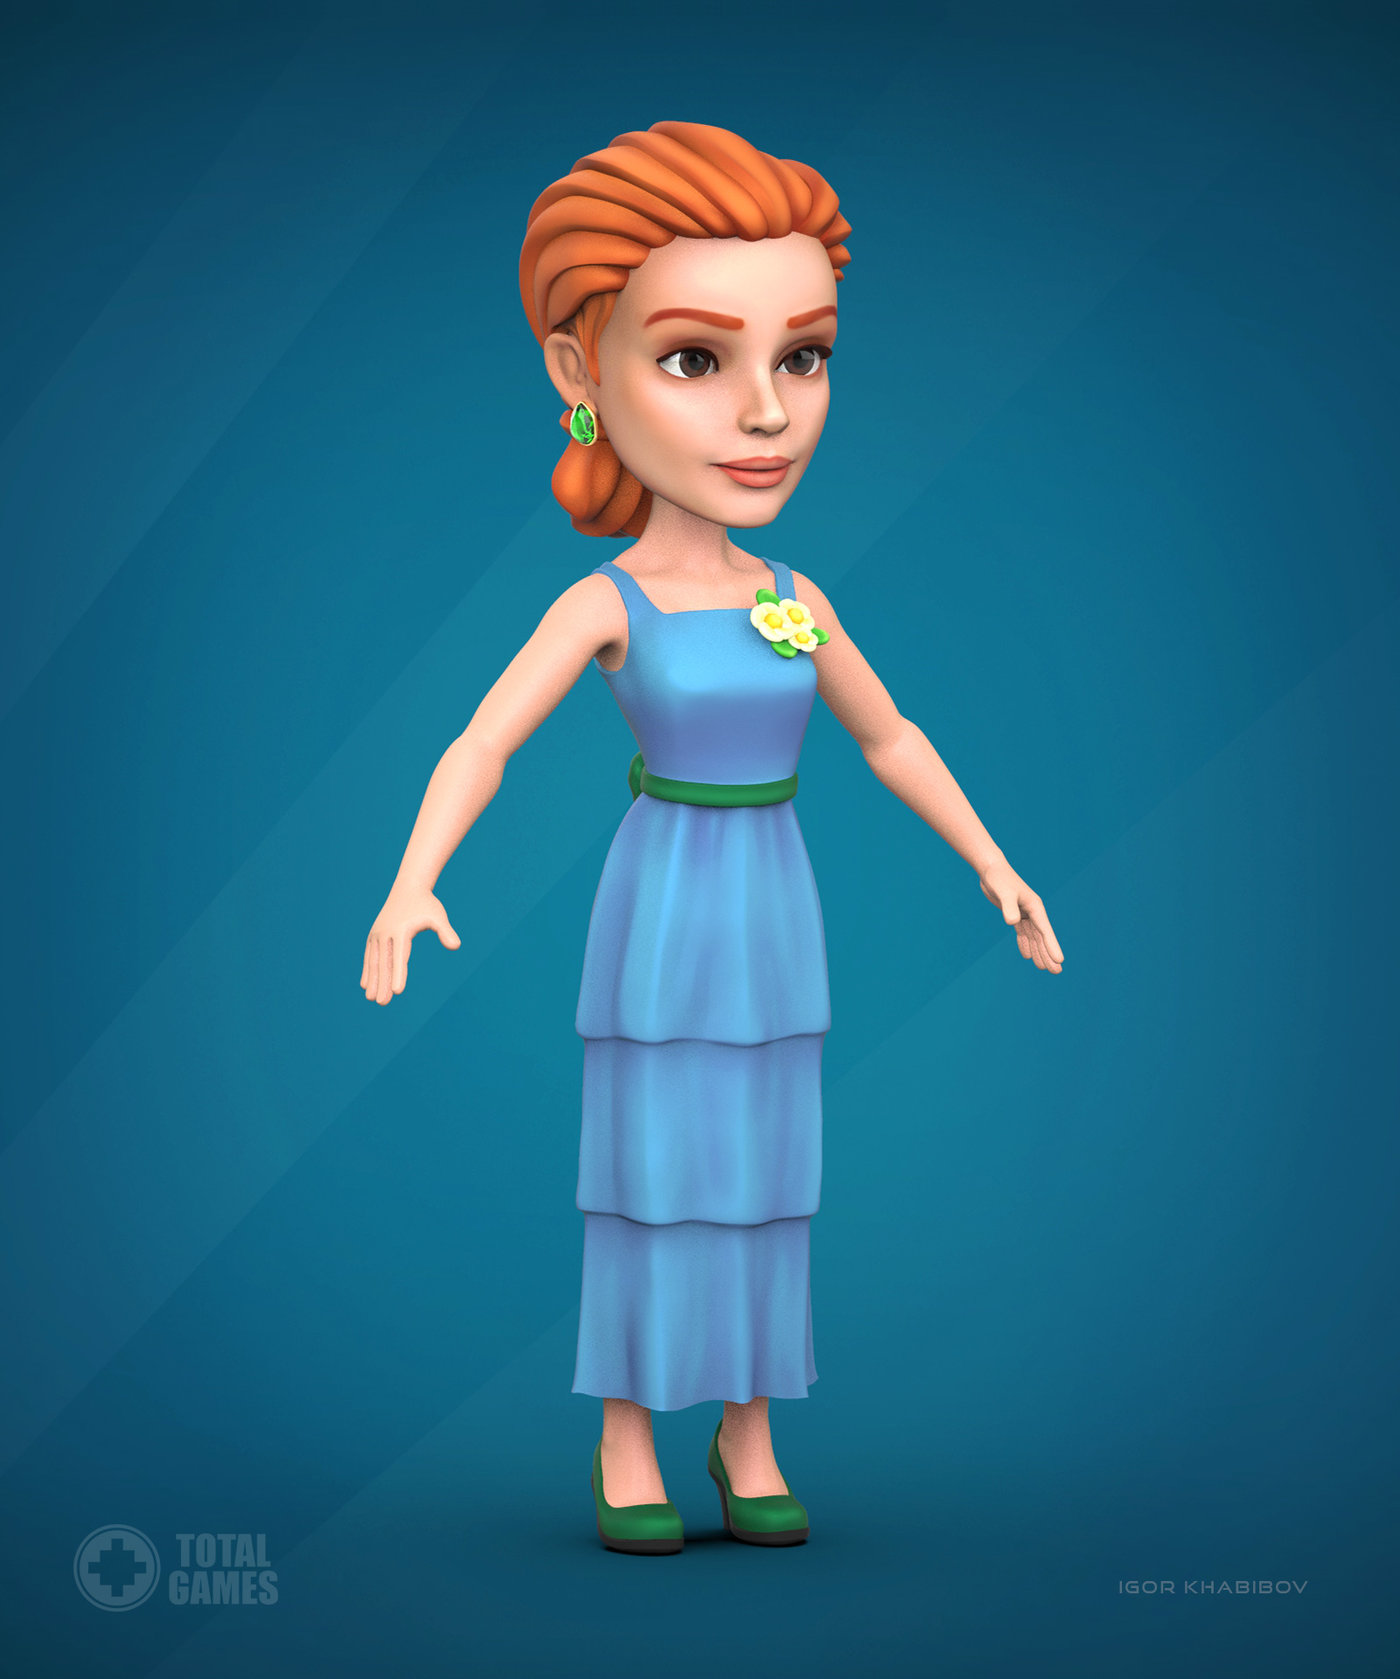 Stylized game character.